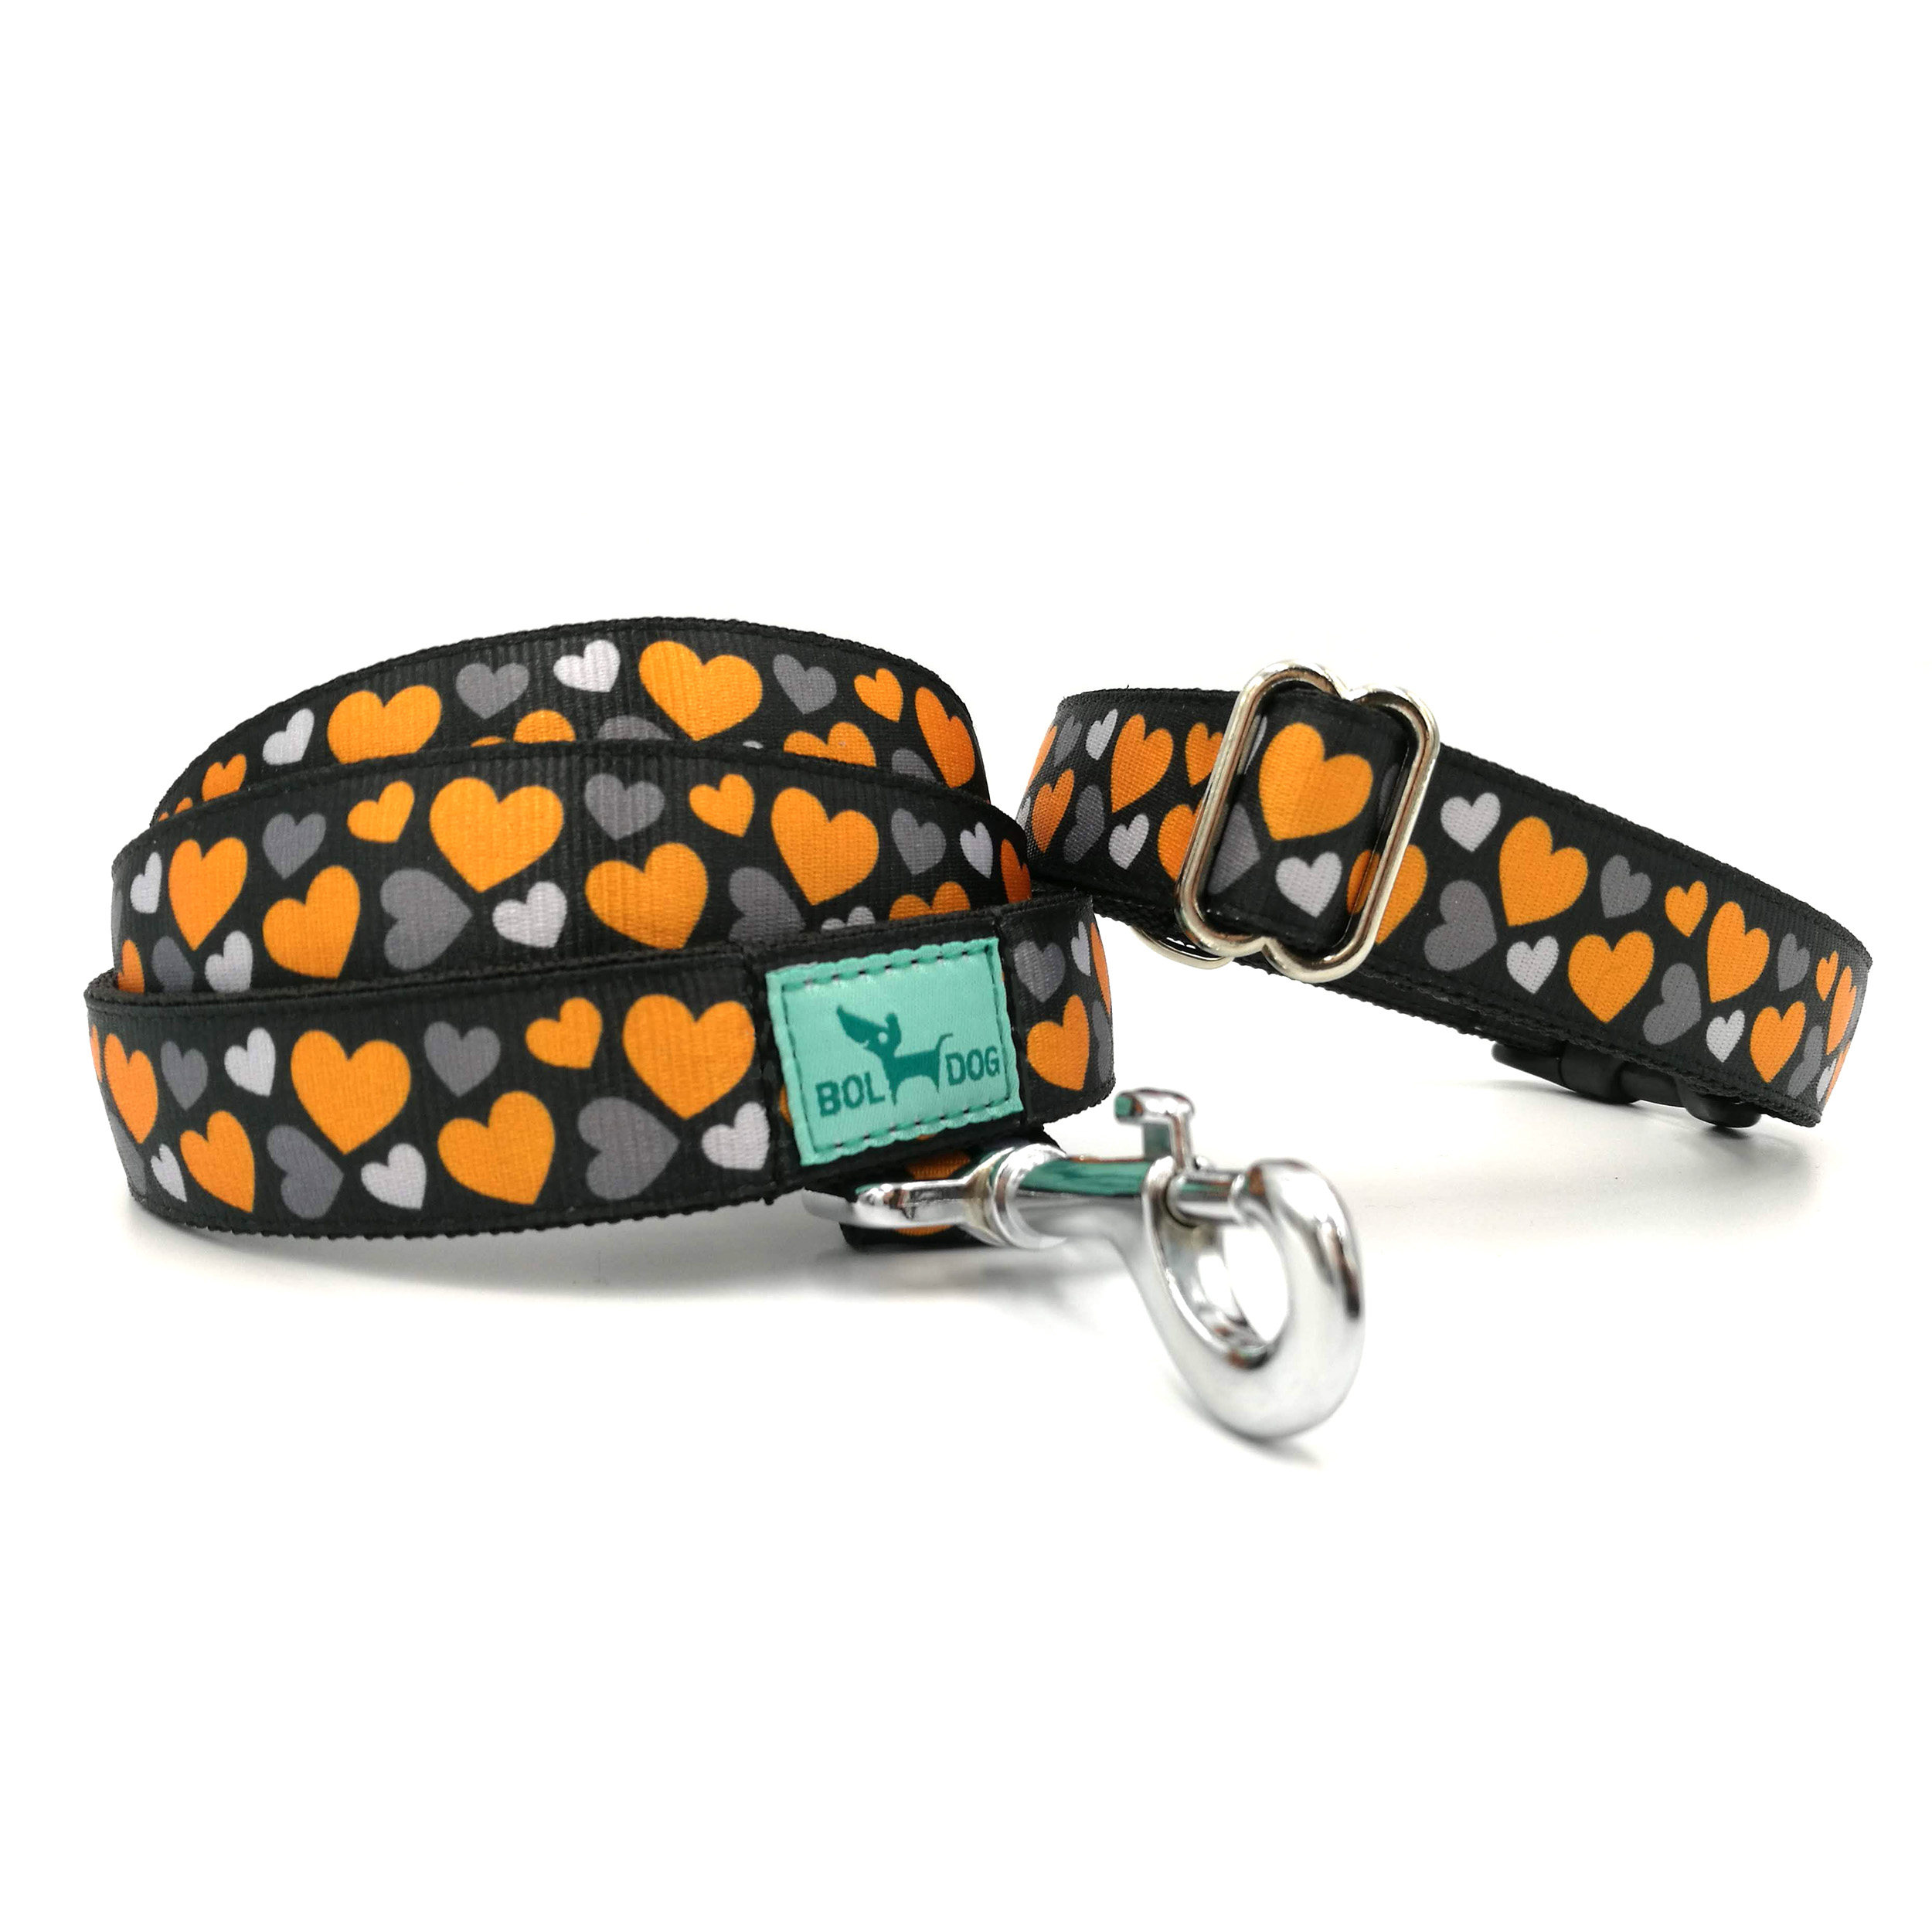 heart patterned dog leash and collar sets